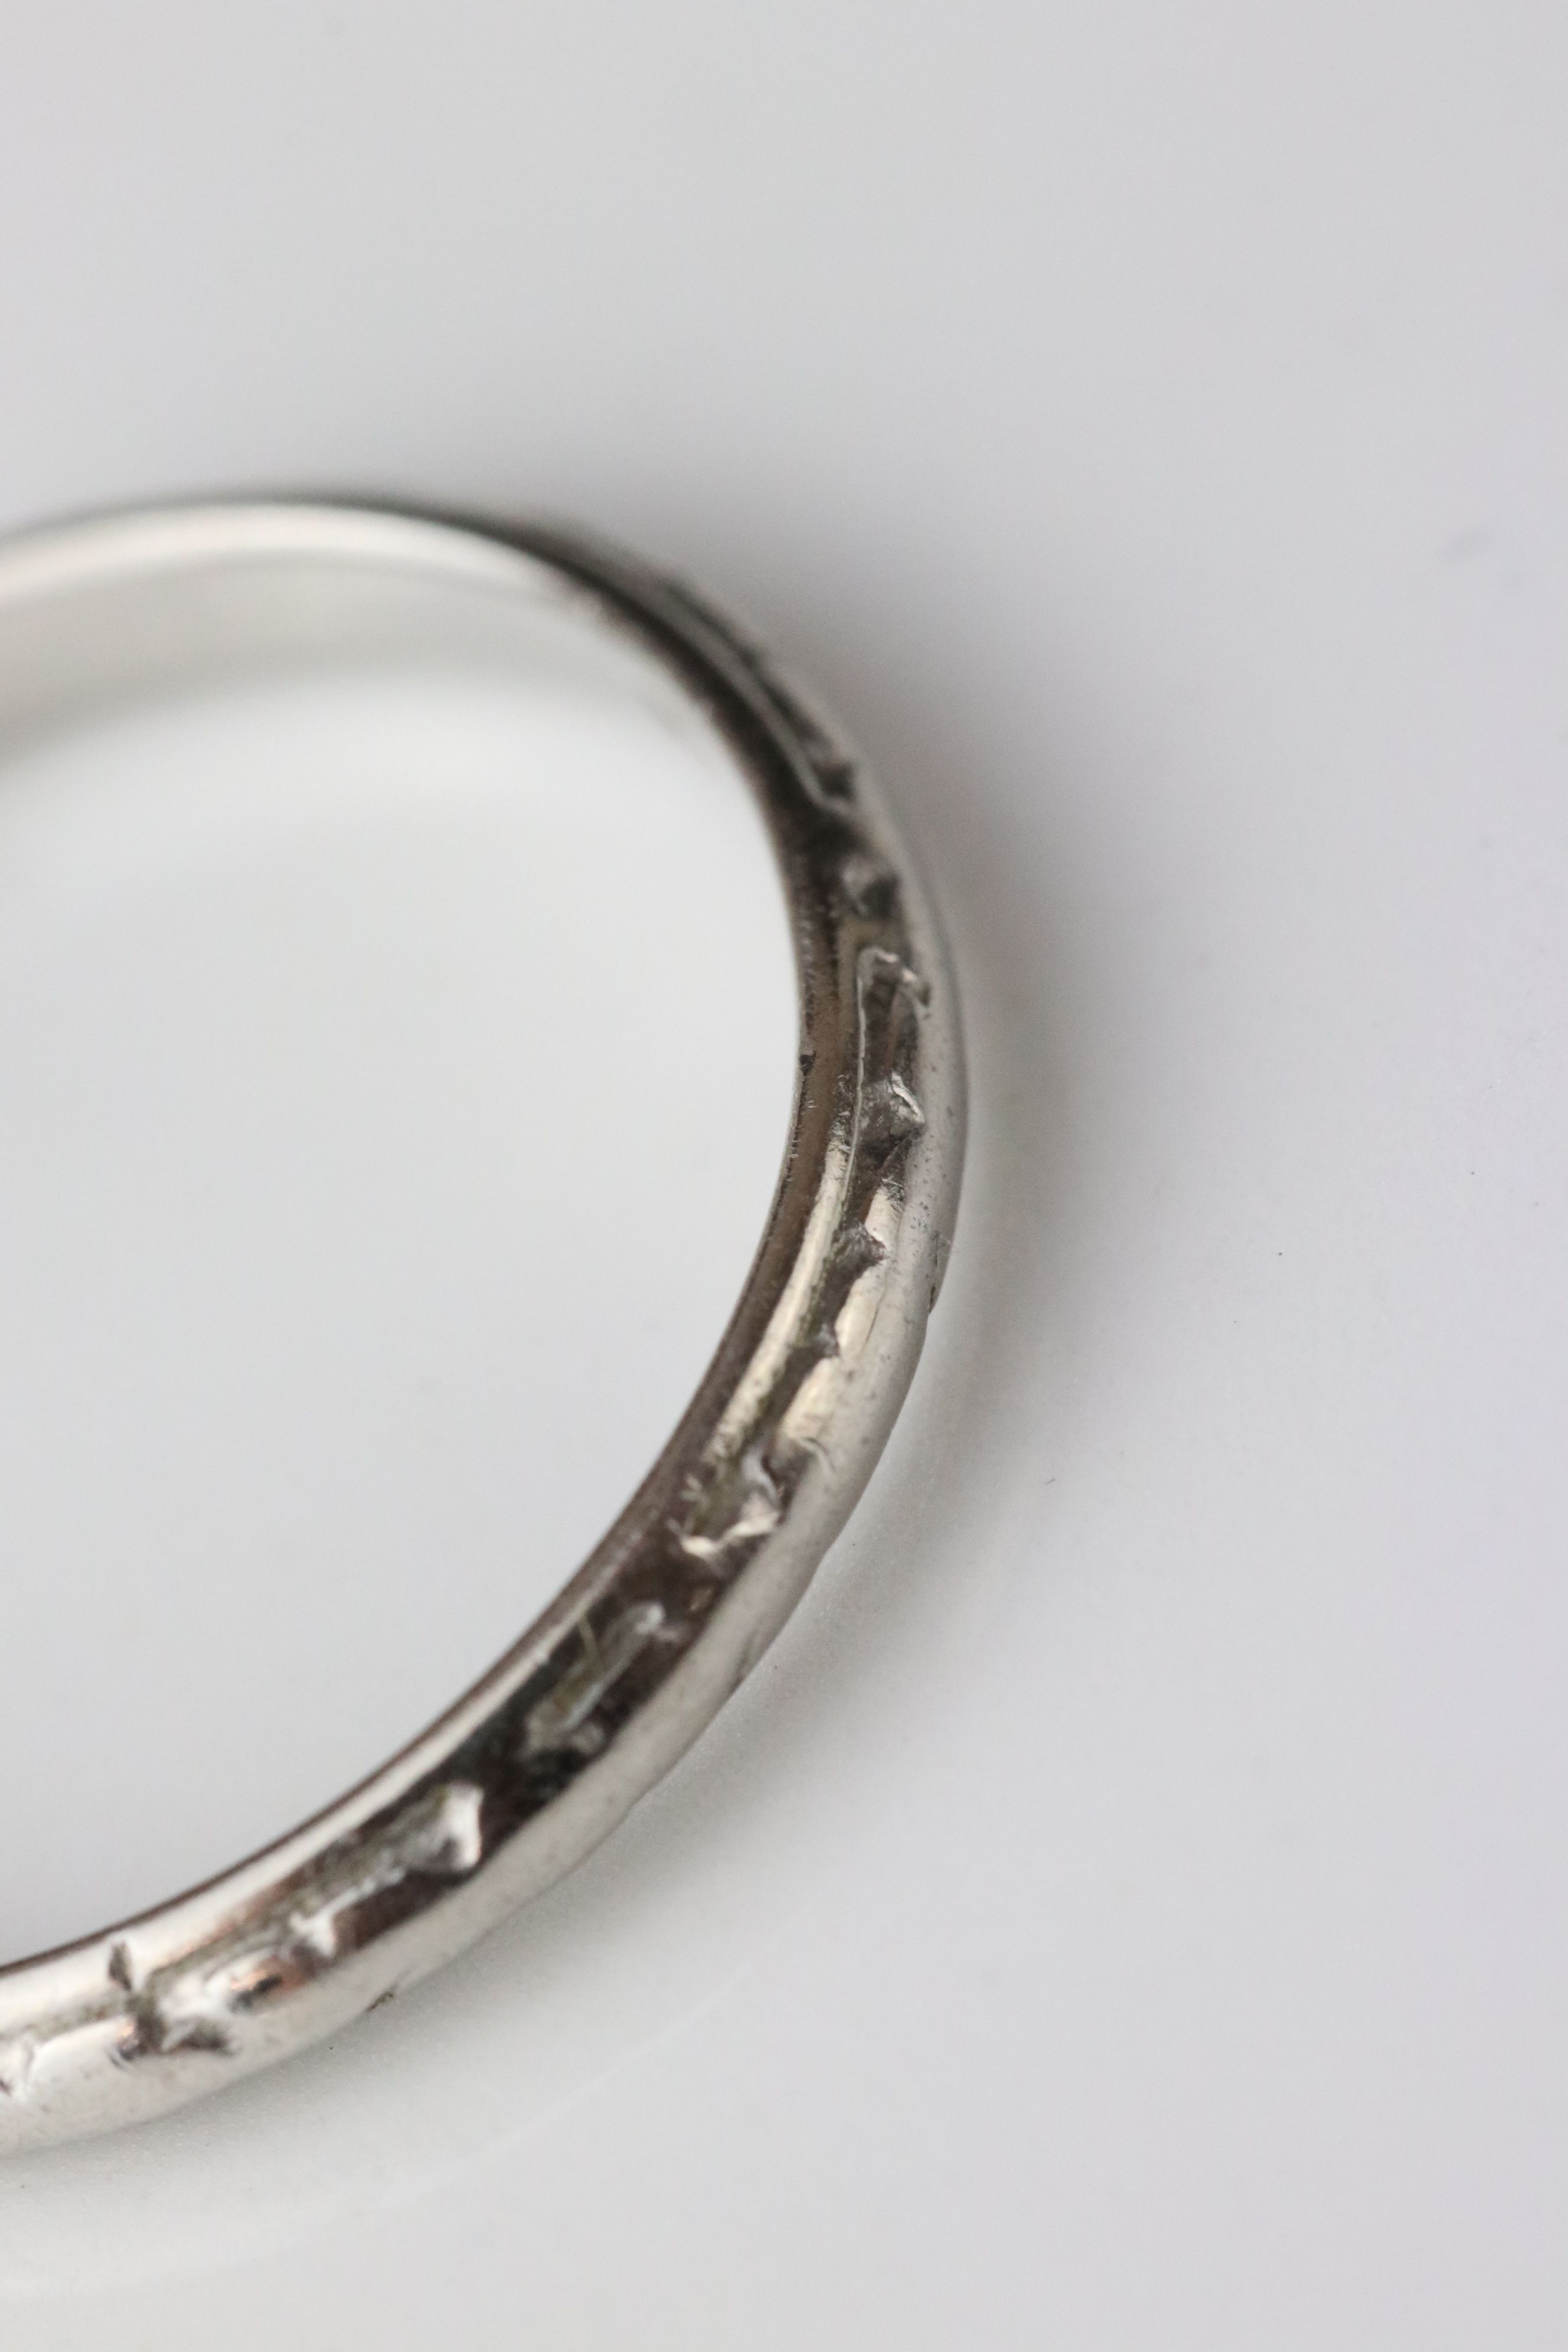 Platinum wedding band, worn foliate design, width approx 2.5mm, ring size M - Image 4 of 4